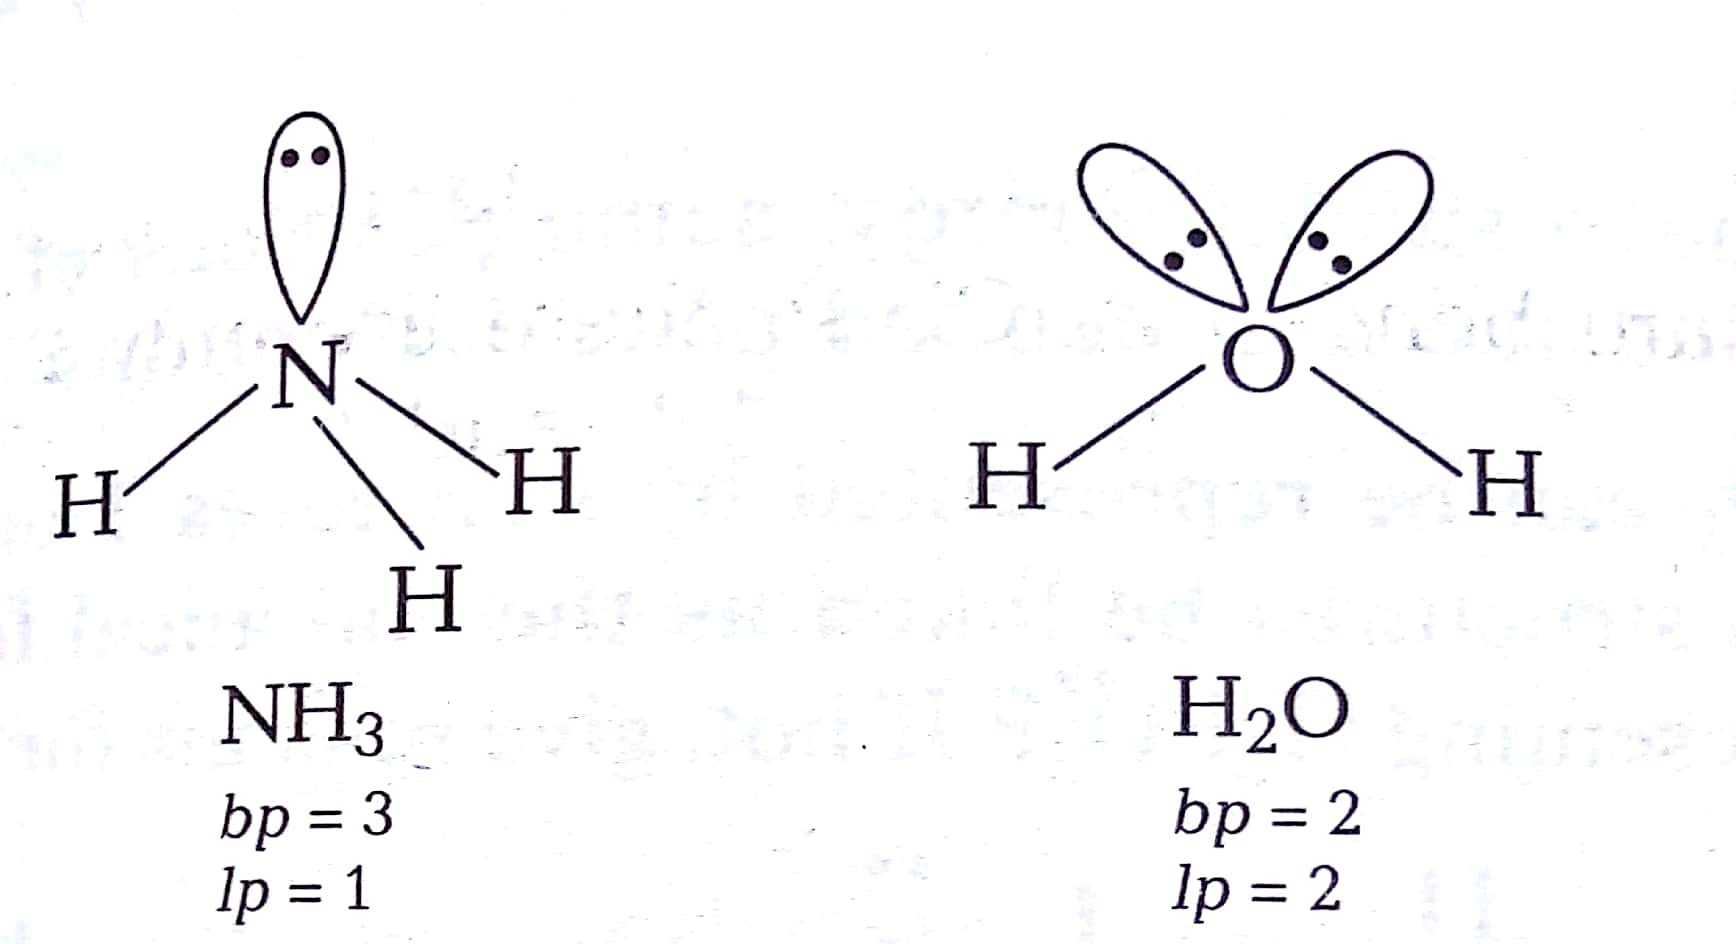 Question 4.8 Although geometries of NH3 and H2O molecules